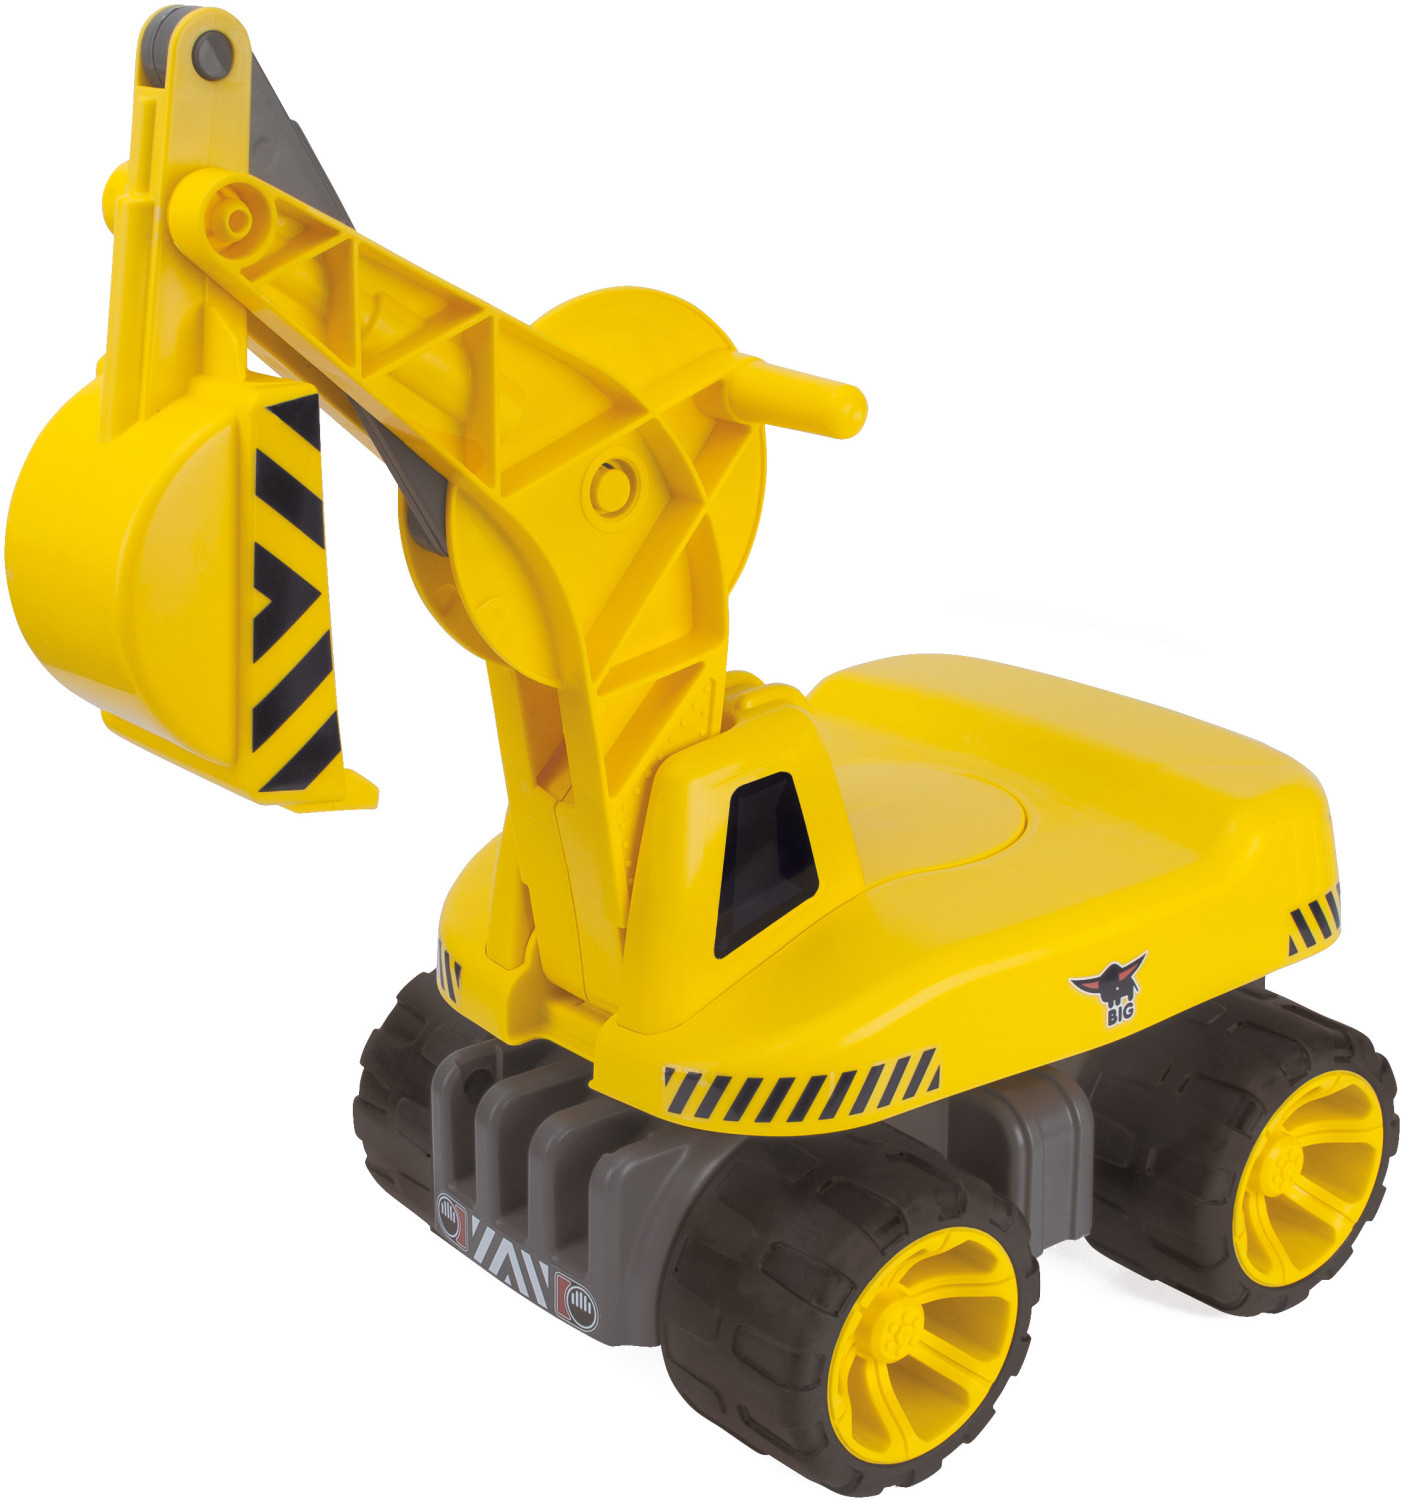 Big Power-Worker Maxi-Digger (55811)